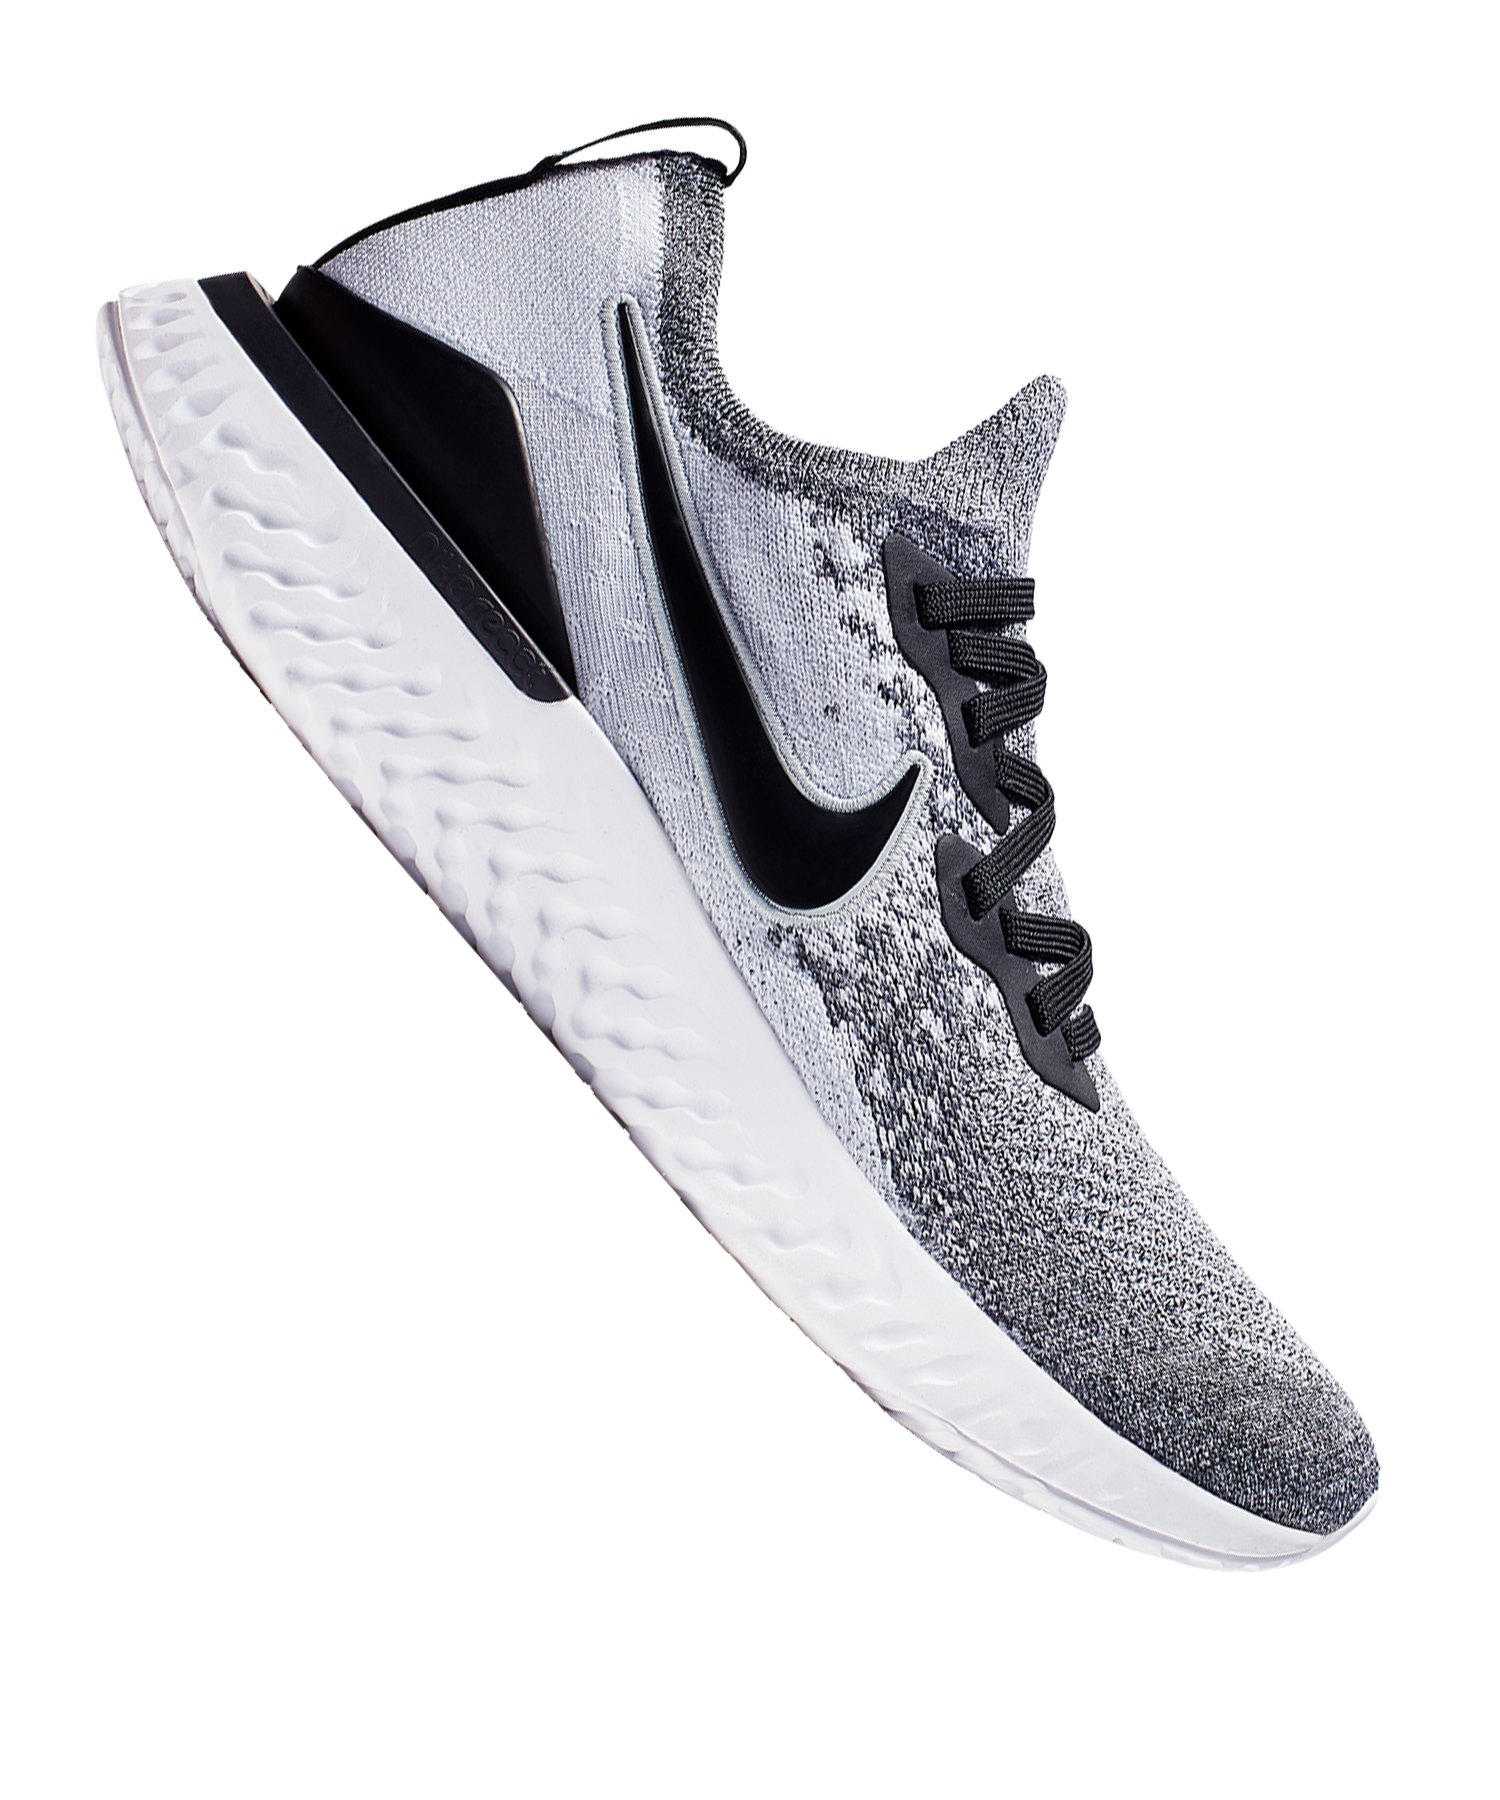 check out 571b2 09f97 Nike Epic React Flyknit 2 Running Weiss Grau F101 - Weiss